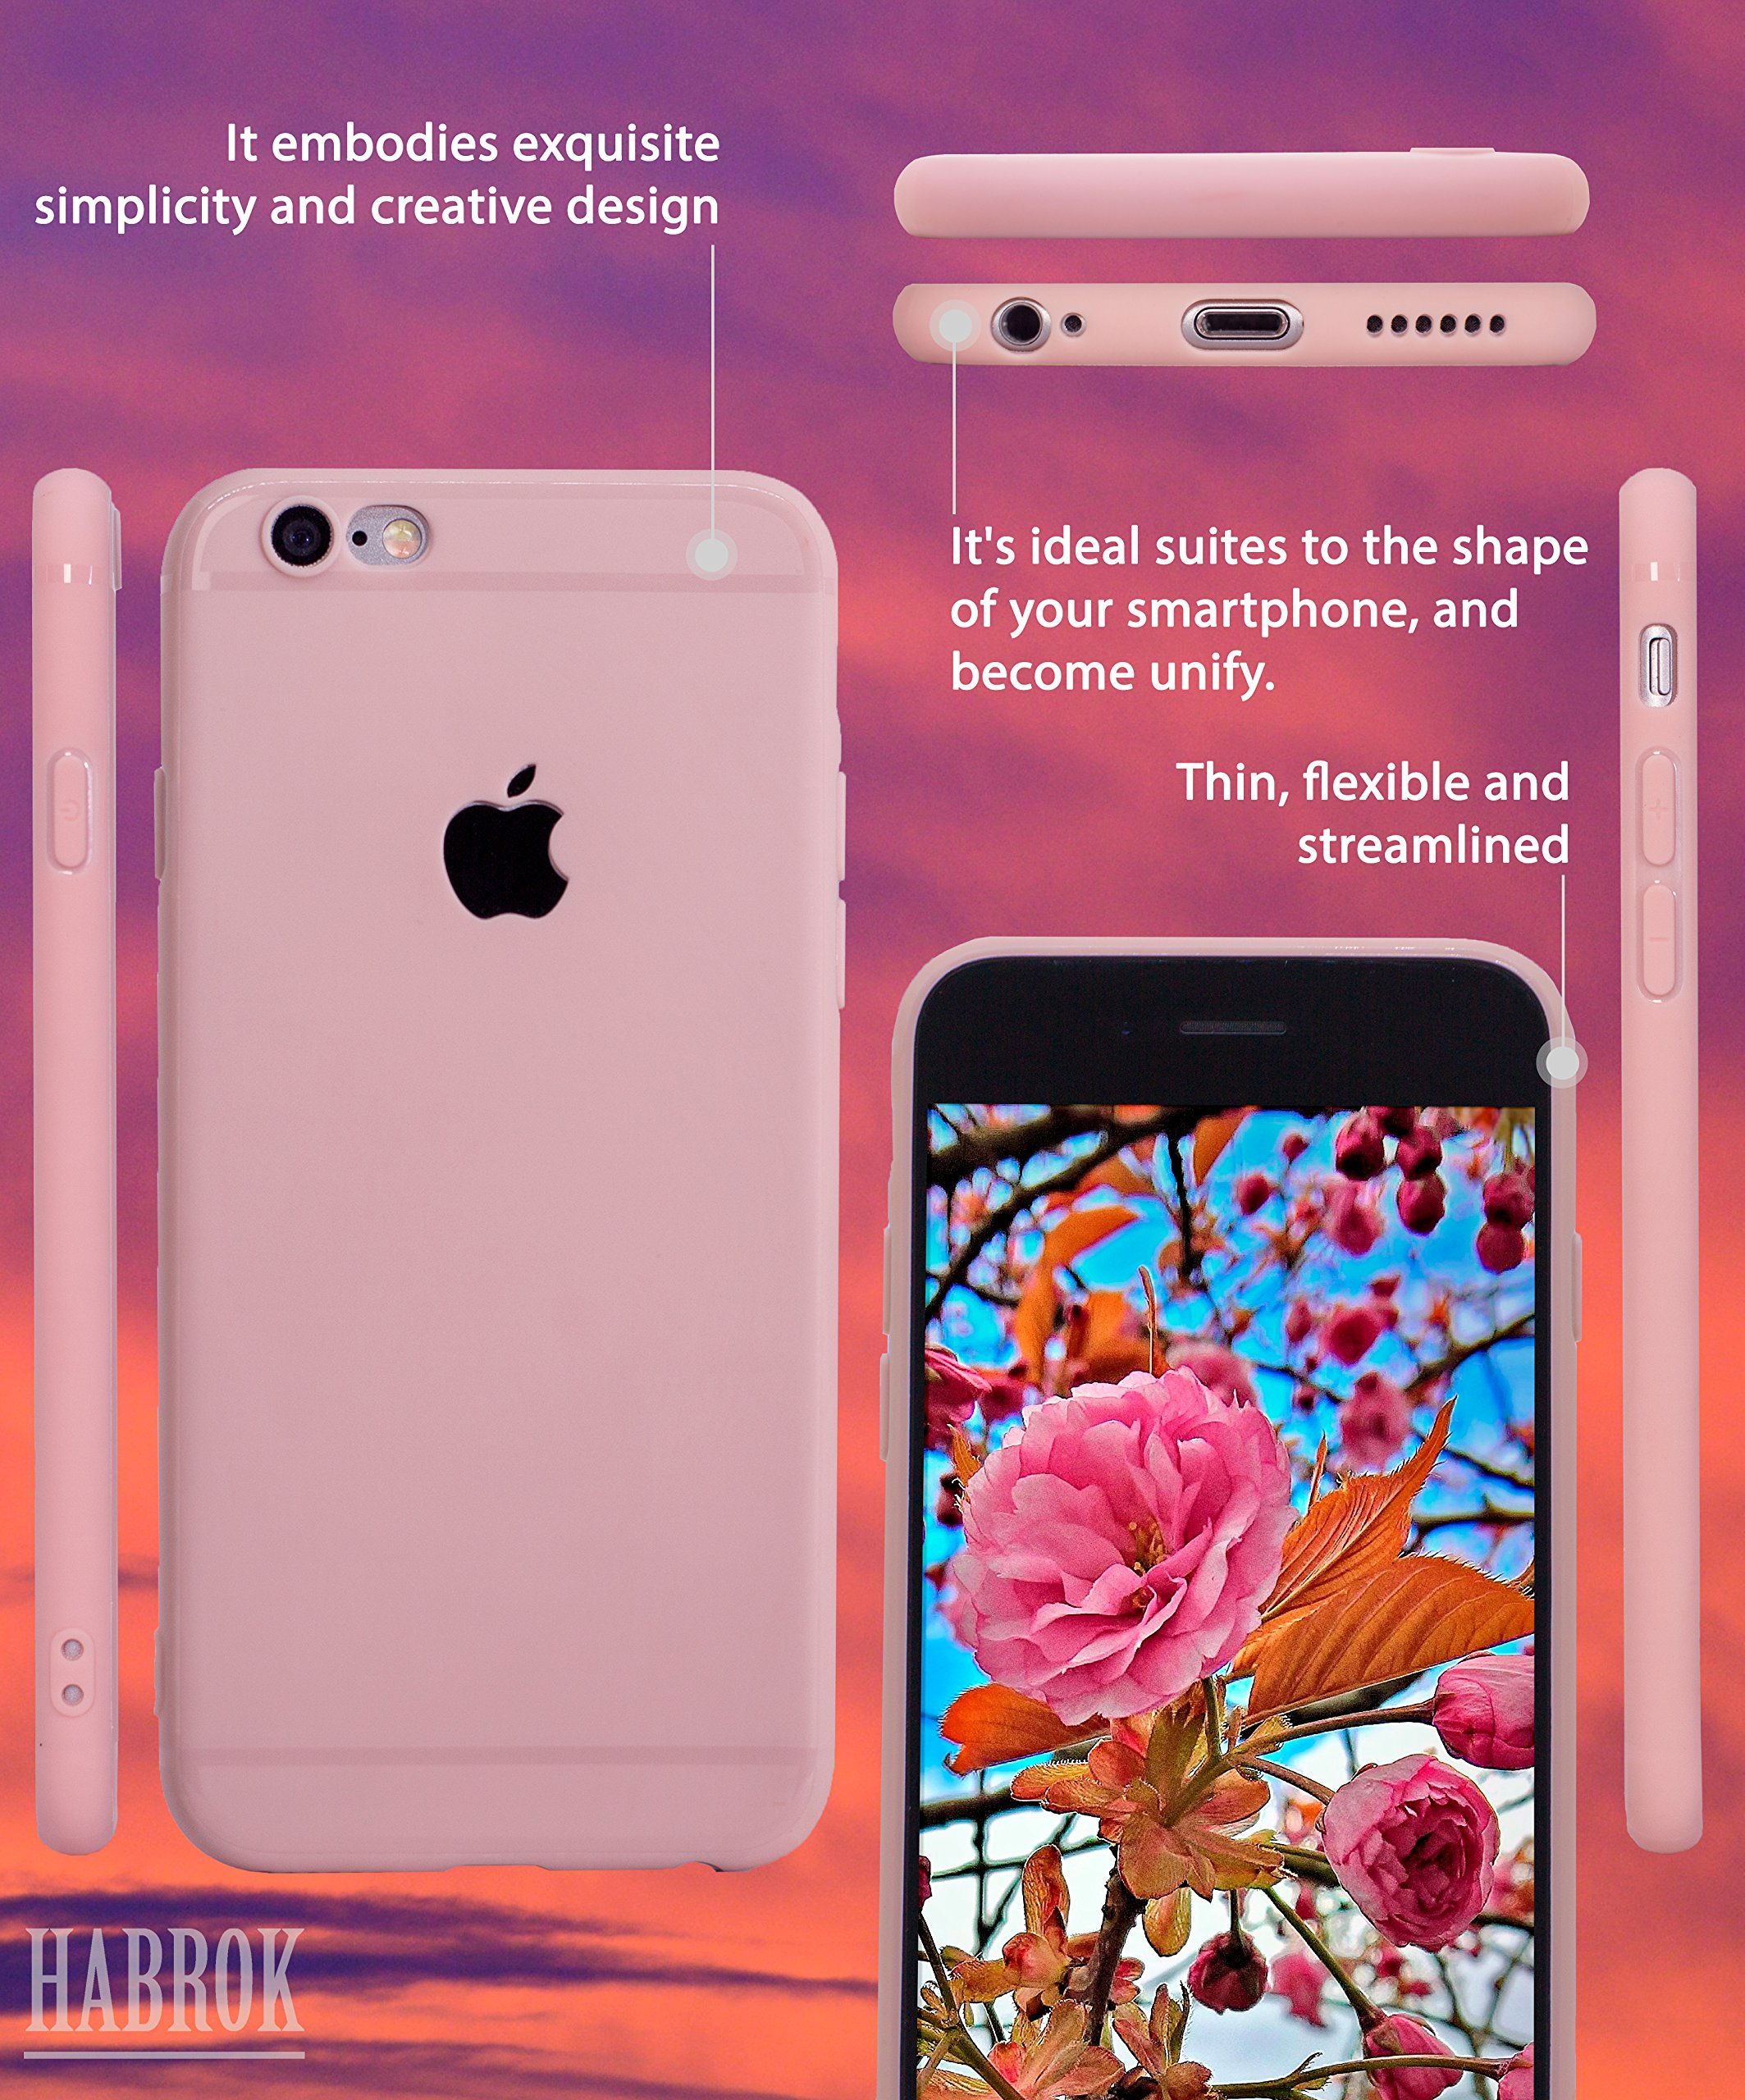 Habrok Super Slim Case for iPhone 6 Pink, silicone phone cases, apple accessories, clear design girls, women, teens thin cheap defender tpu life, soft non slip